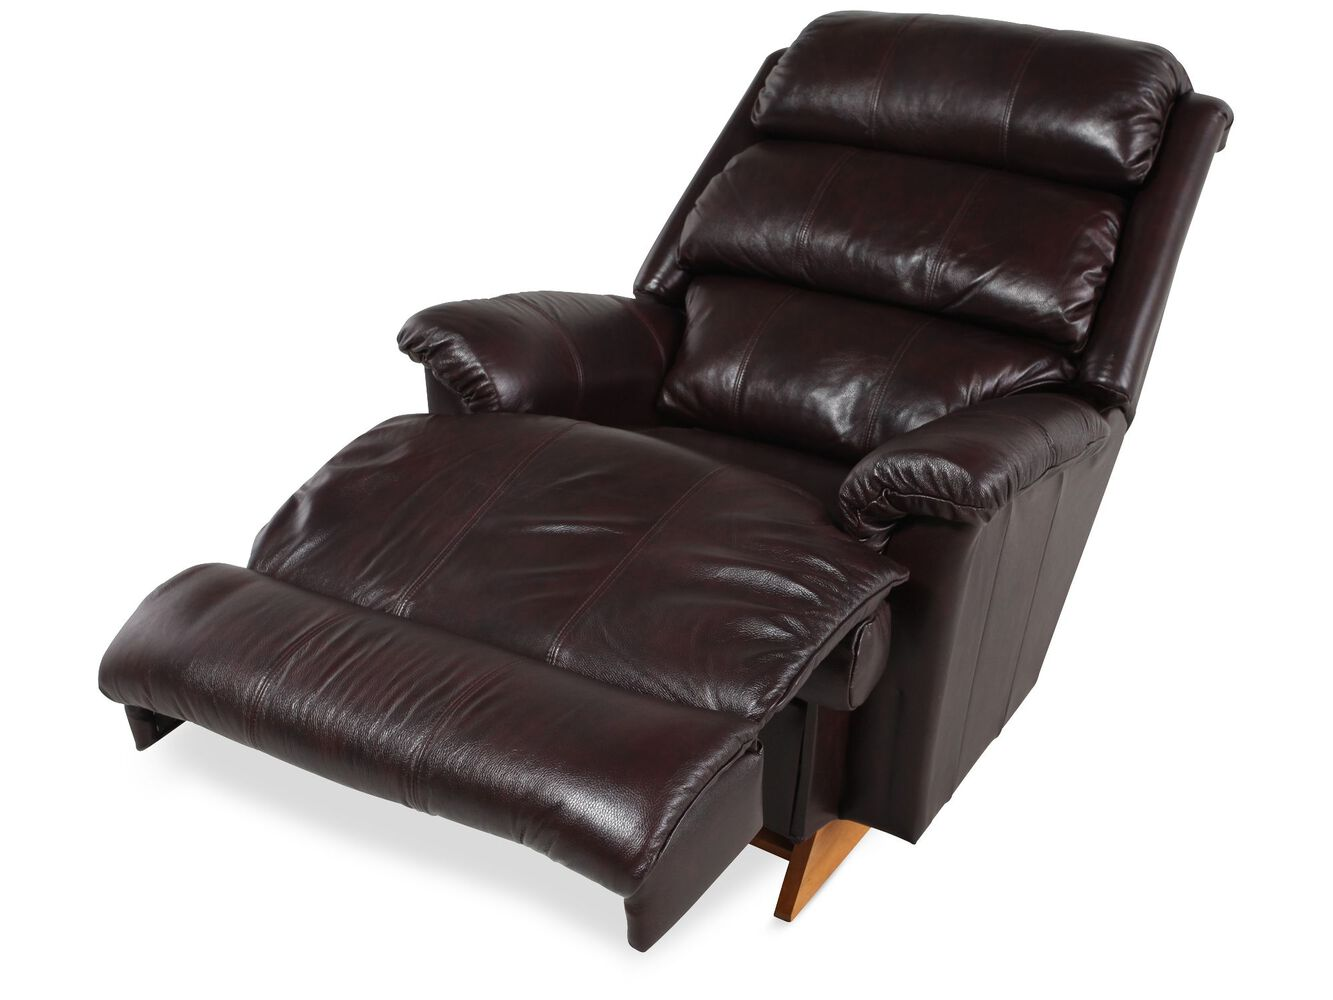 heavy chairs wide large on free for arm recliner save duty reclining recliners shipping sales tax bigmanchair cha best big man